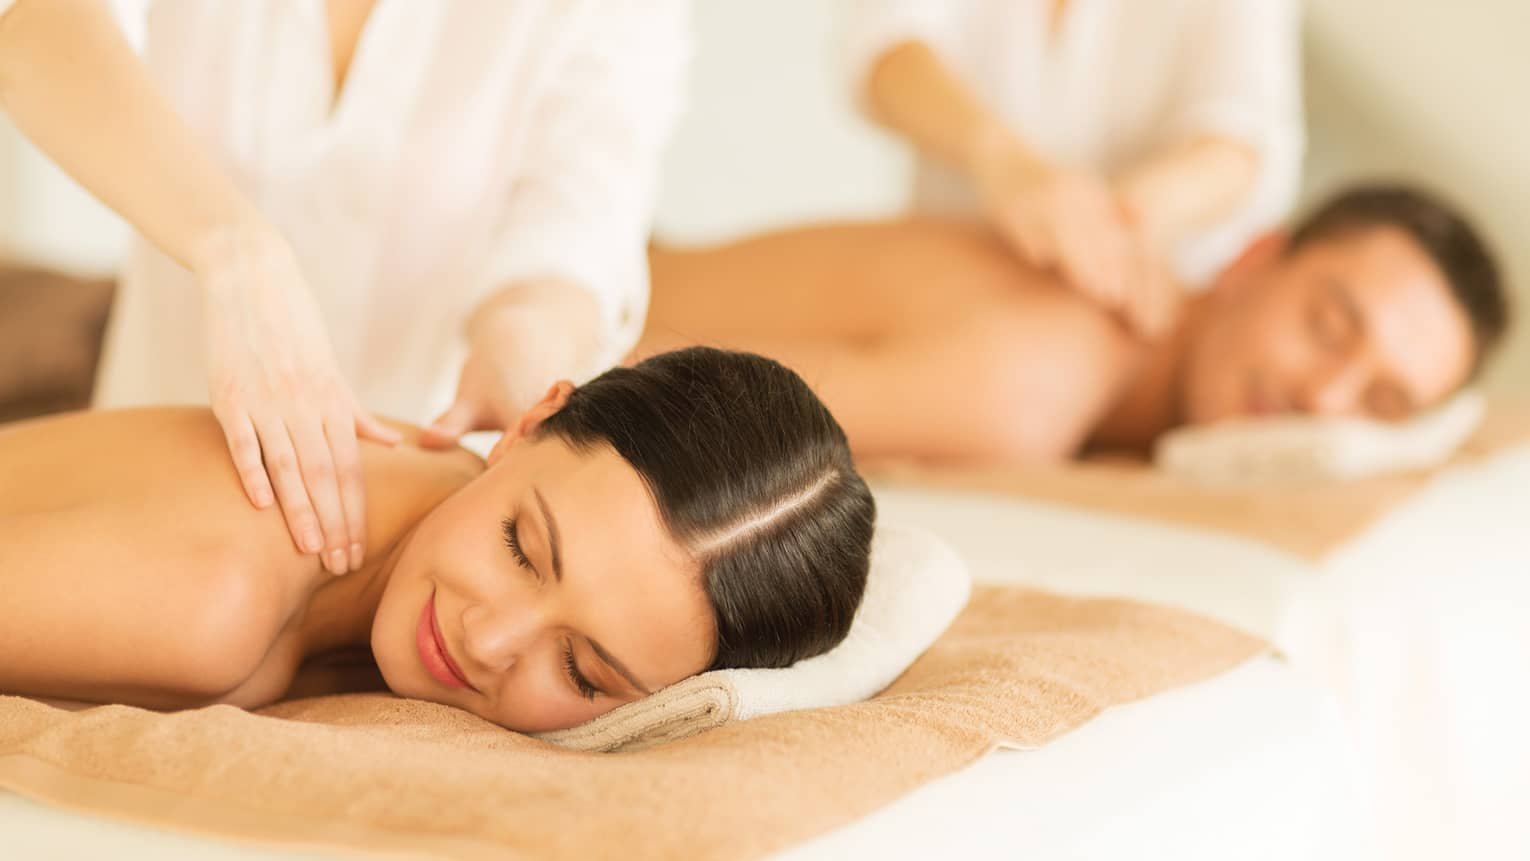 Woman and man lie side-by-side on massage tables as spa staff massage their bare shoulders